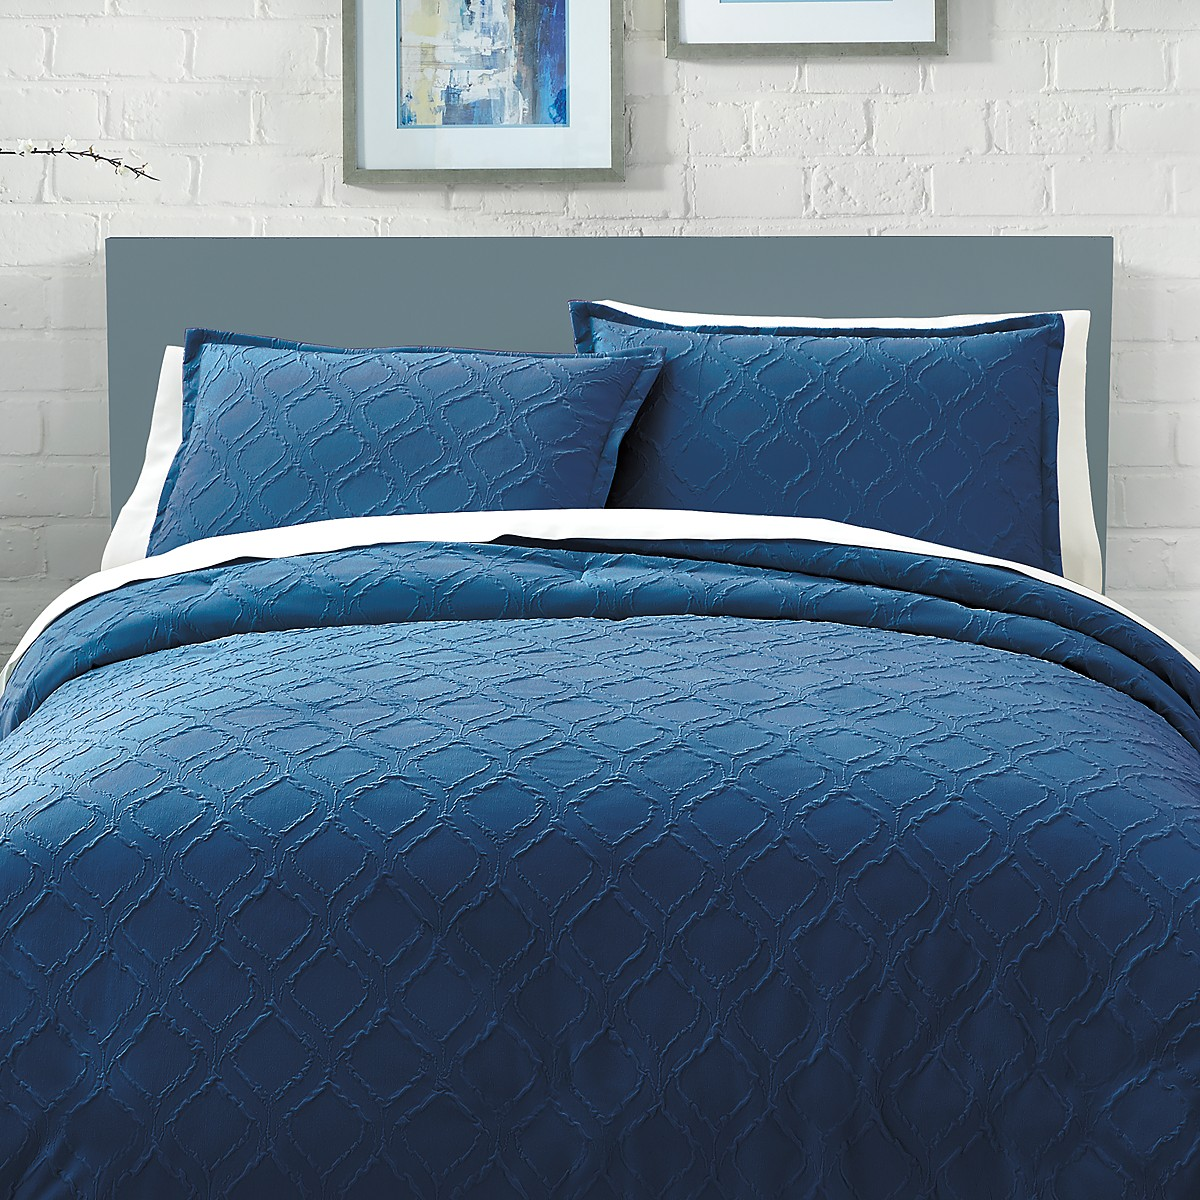 matouk summer layer tif wid weight pdpimgshortdescription usm s product comforter qlt resmode down comp comforters sharpen shop queen bloomingdales op bloomingdale fpx valletto